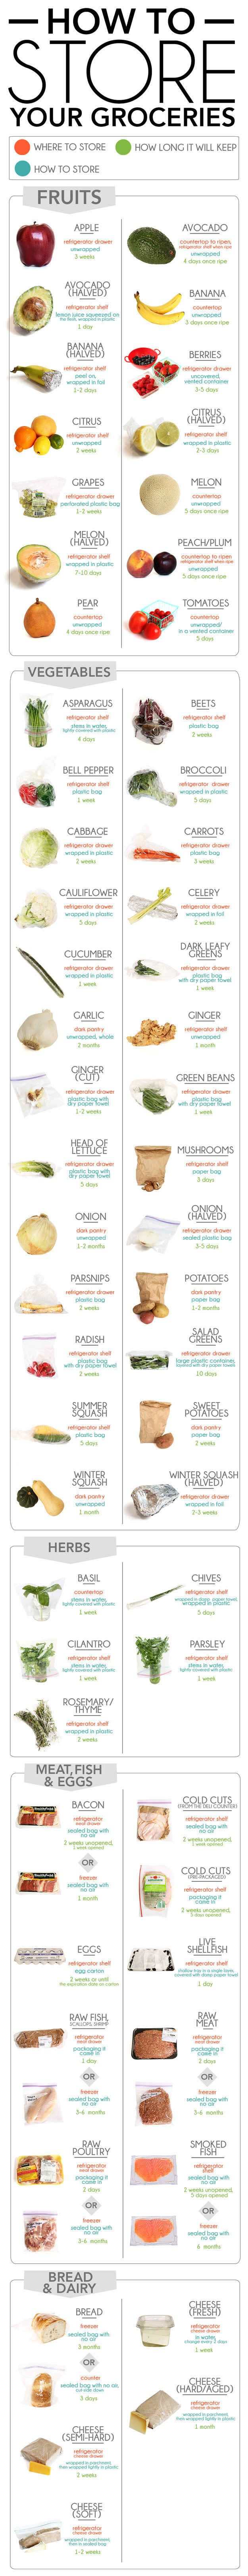 SO GOOD TO KNOW! This Is Exactly How To Store Your Groceries